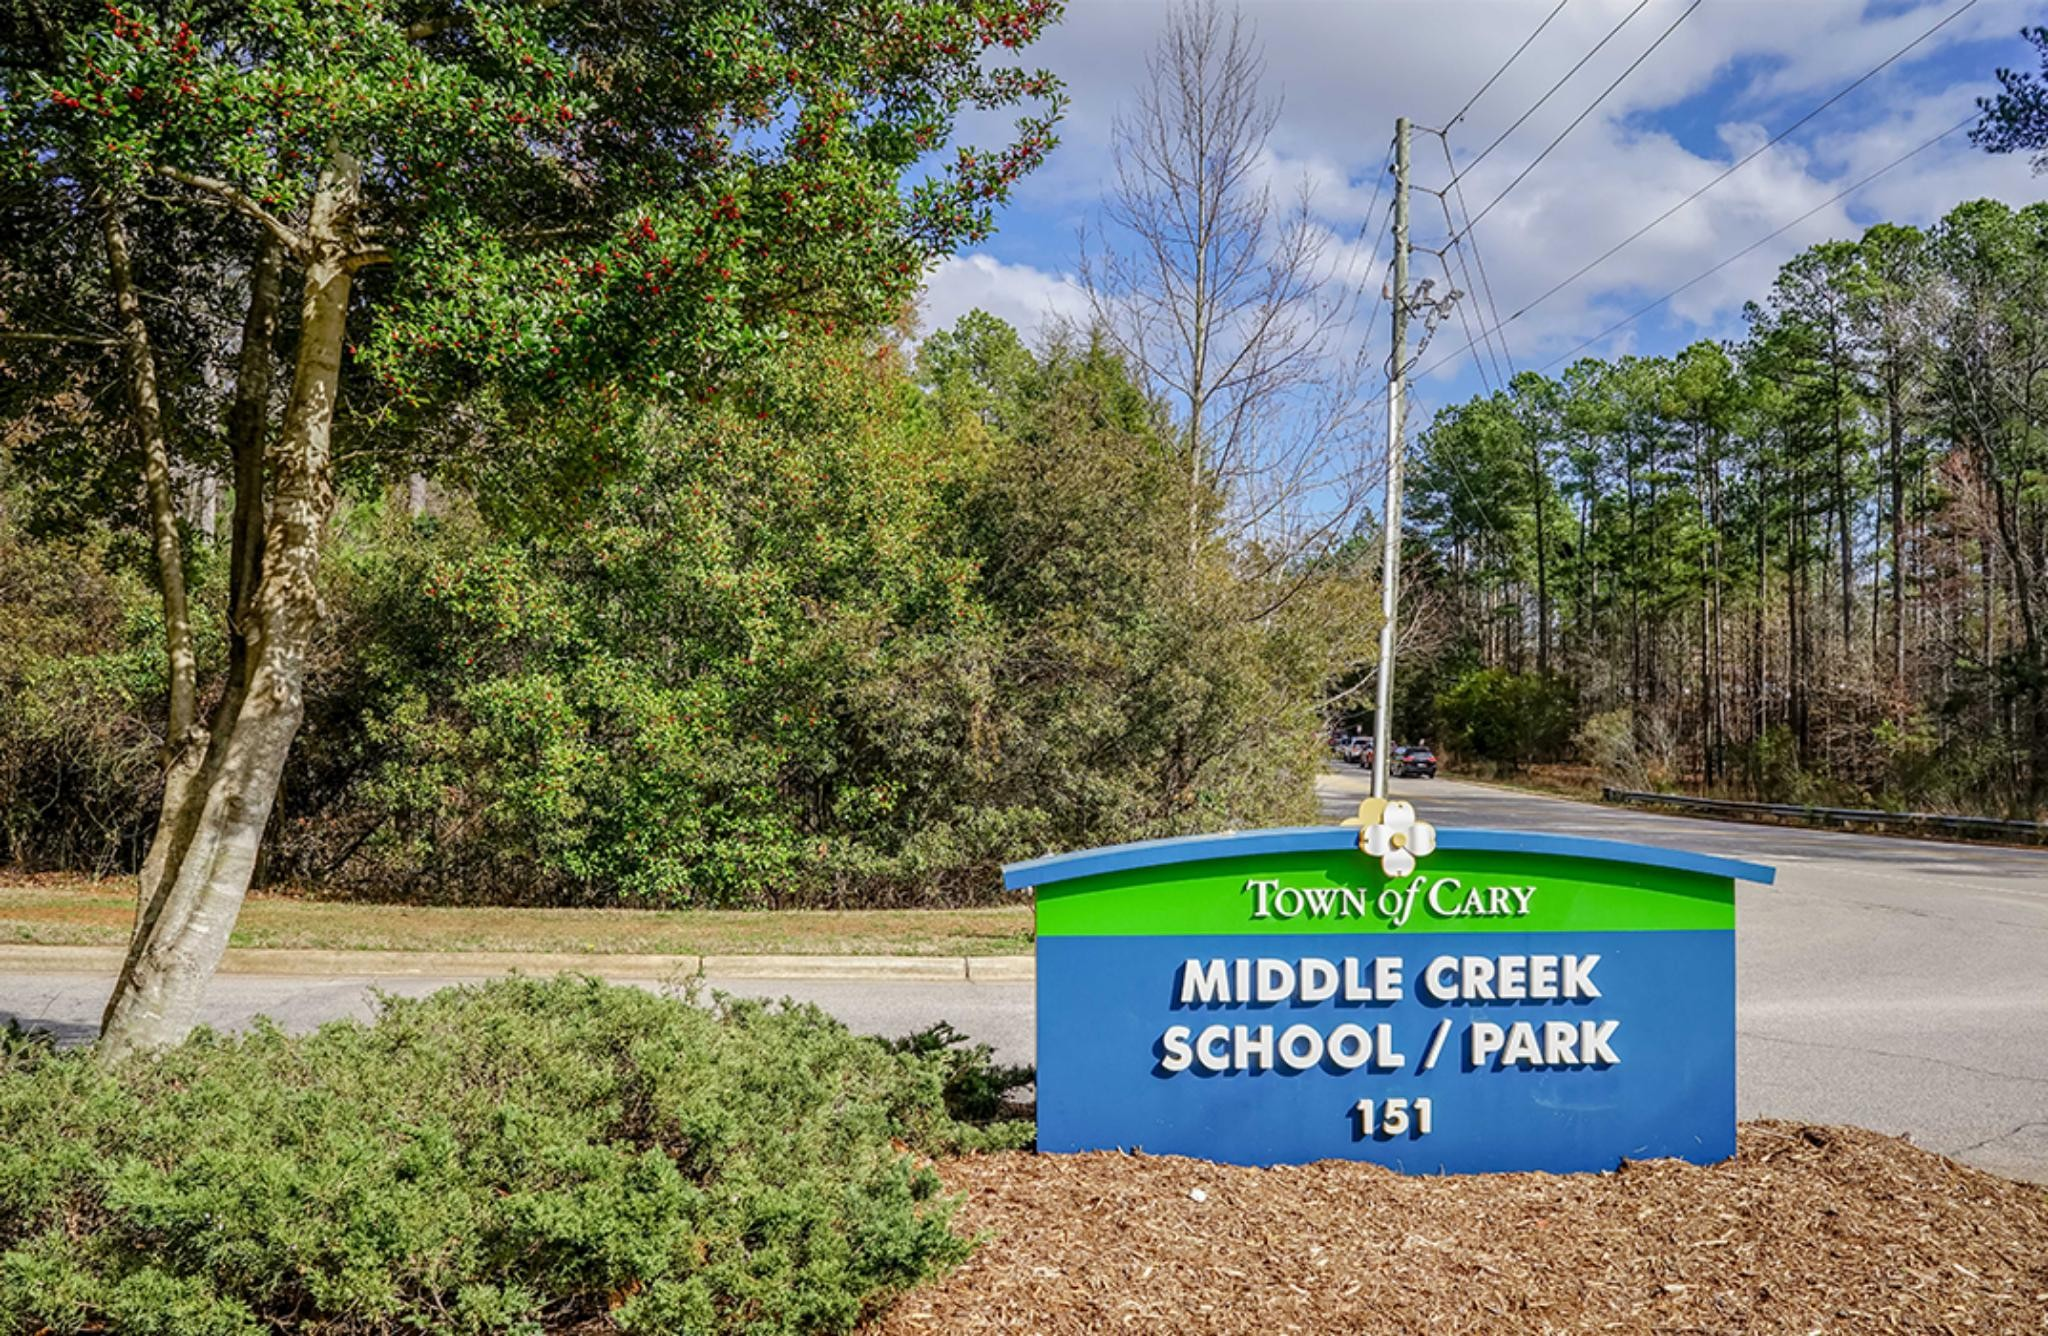 Middle Creek School and Park in Cary, NC